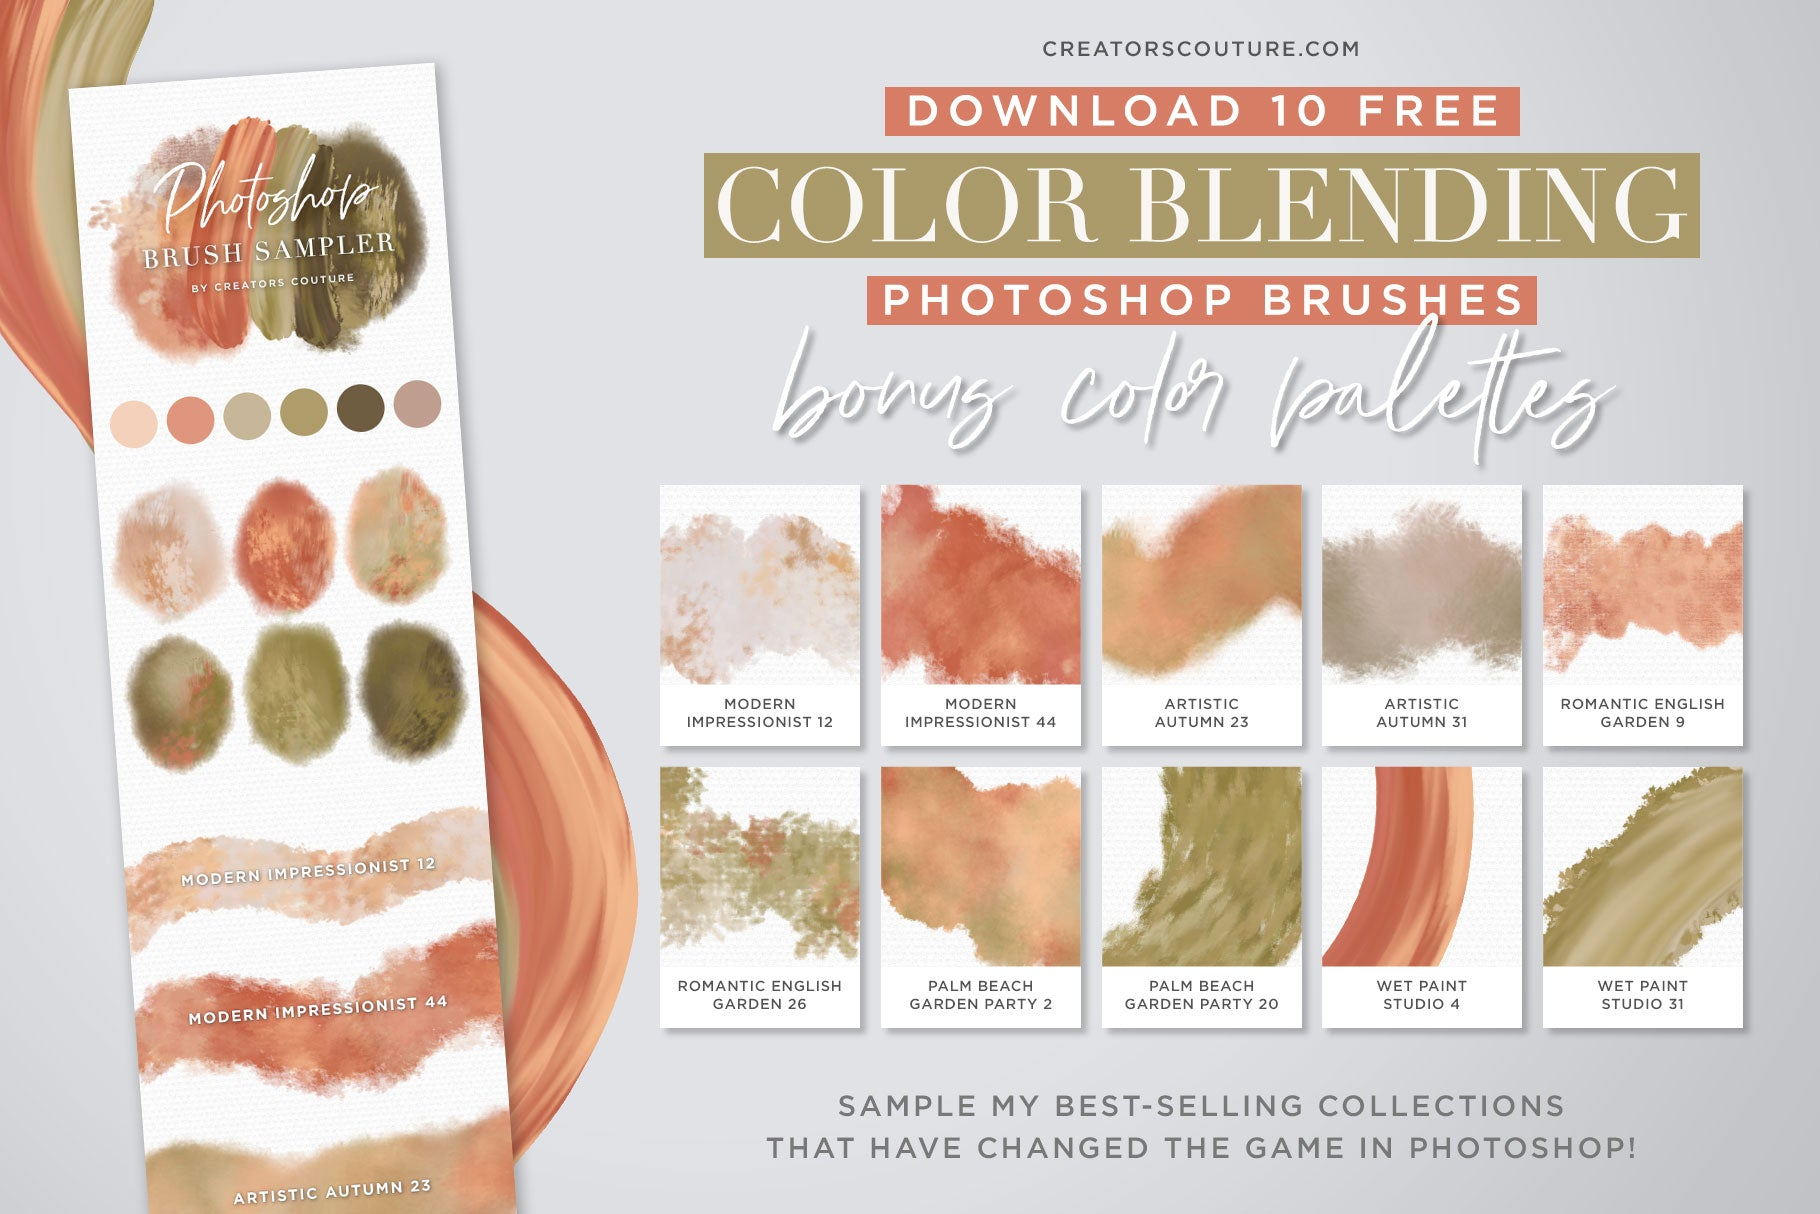 Free Brush Download: 10 Game-Changing, Color-Blending Photoshop Brushes